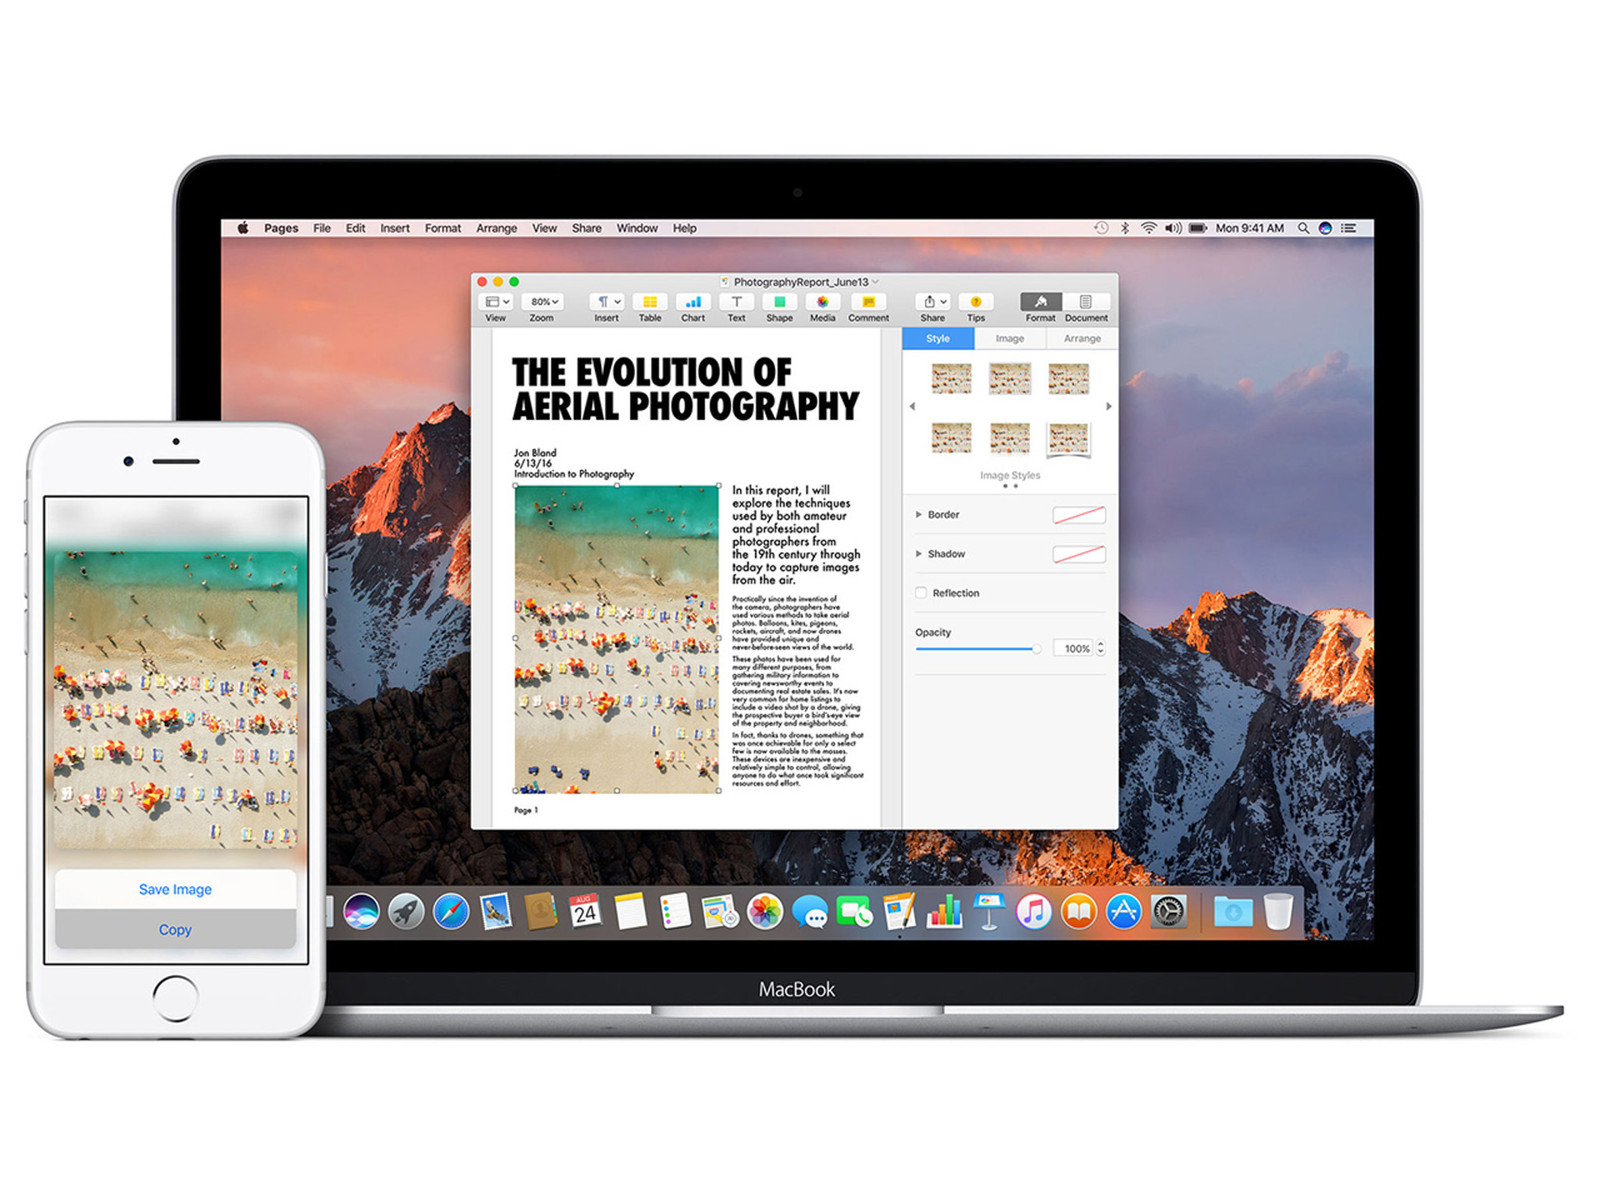 Top 10 Best Handy Ways To Use Your Mac and iPhone Together. 2